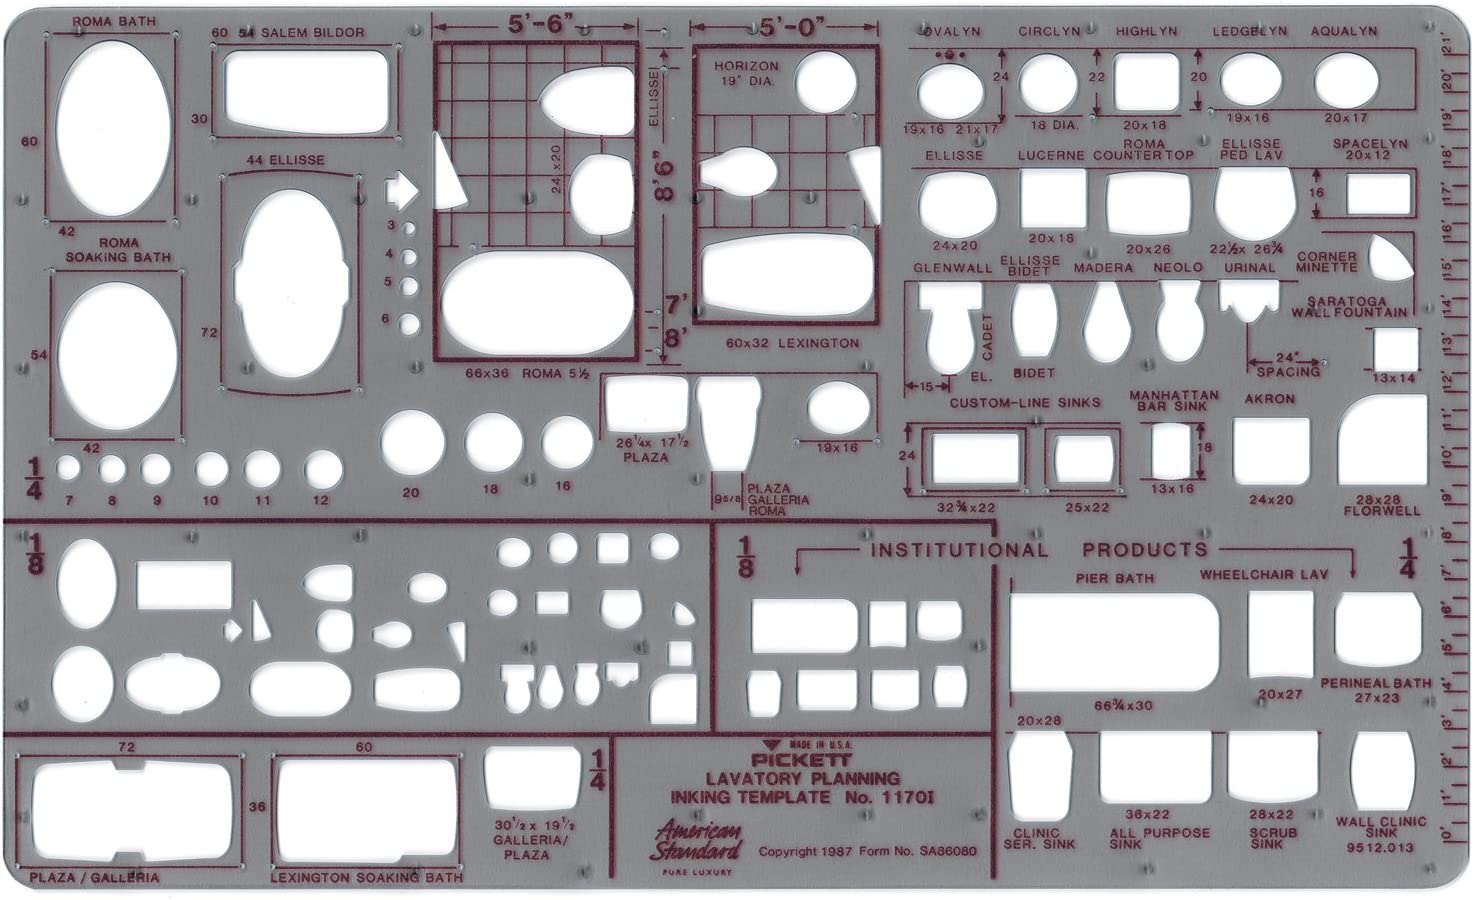 Pickett Lavatory Planning Template, Scale: 1/8 and 1/4 Inch (1170I)